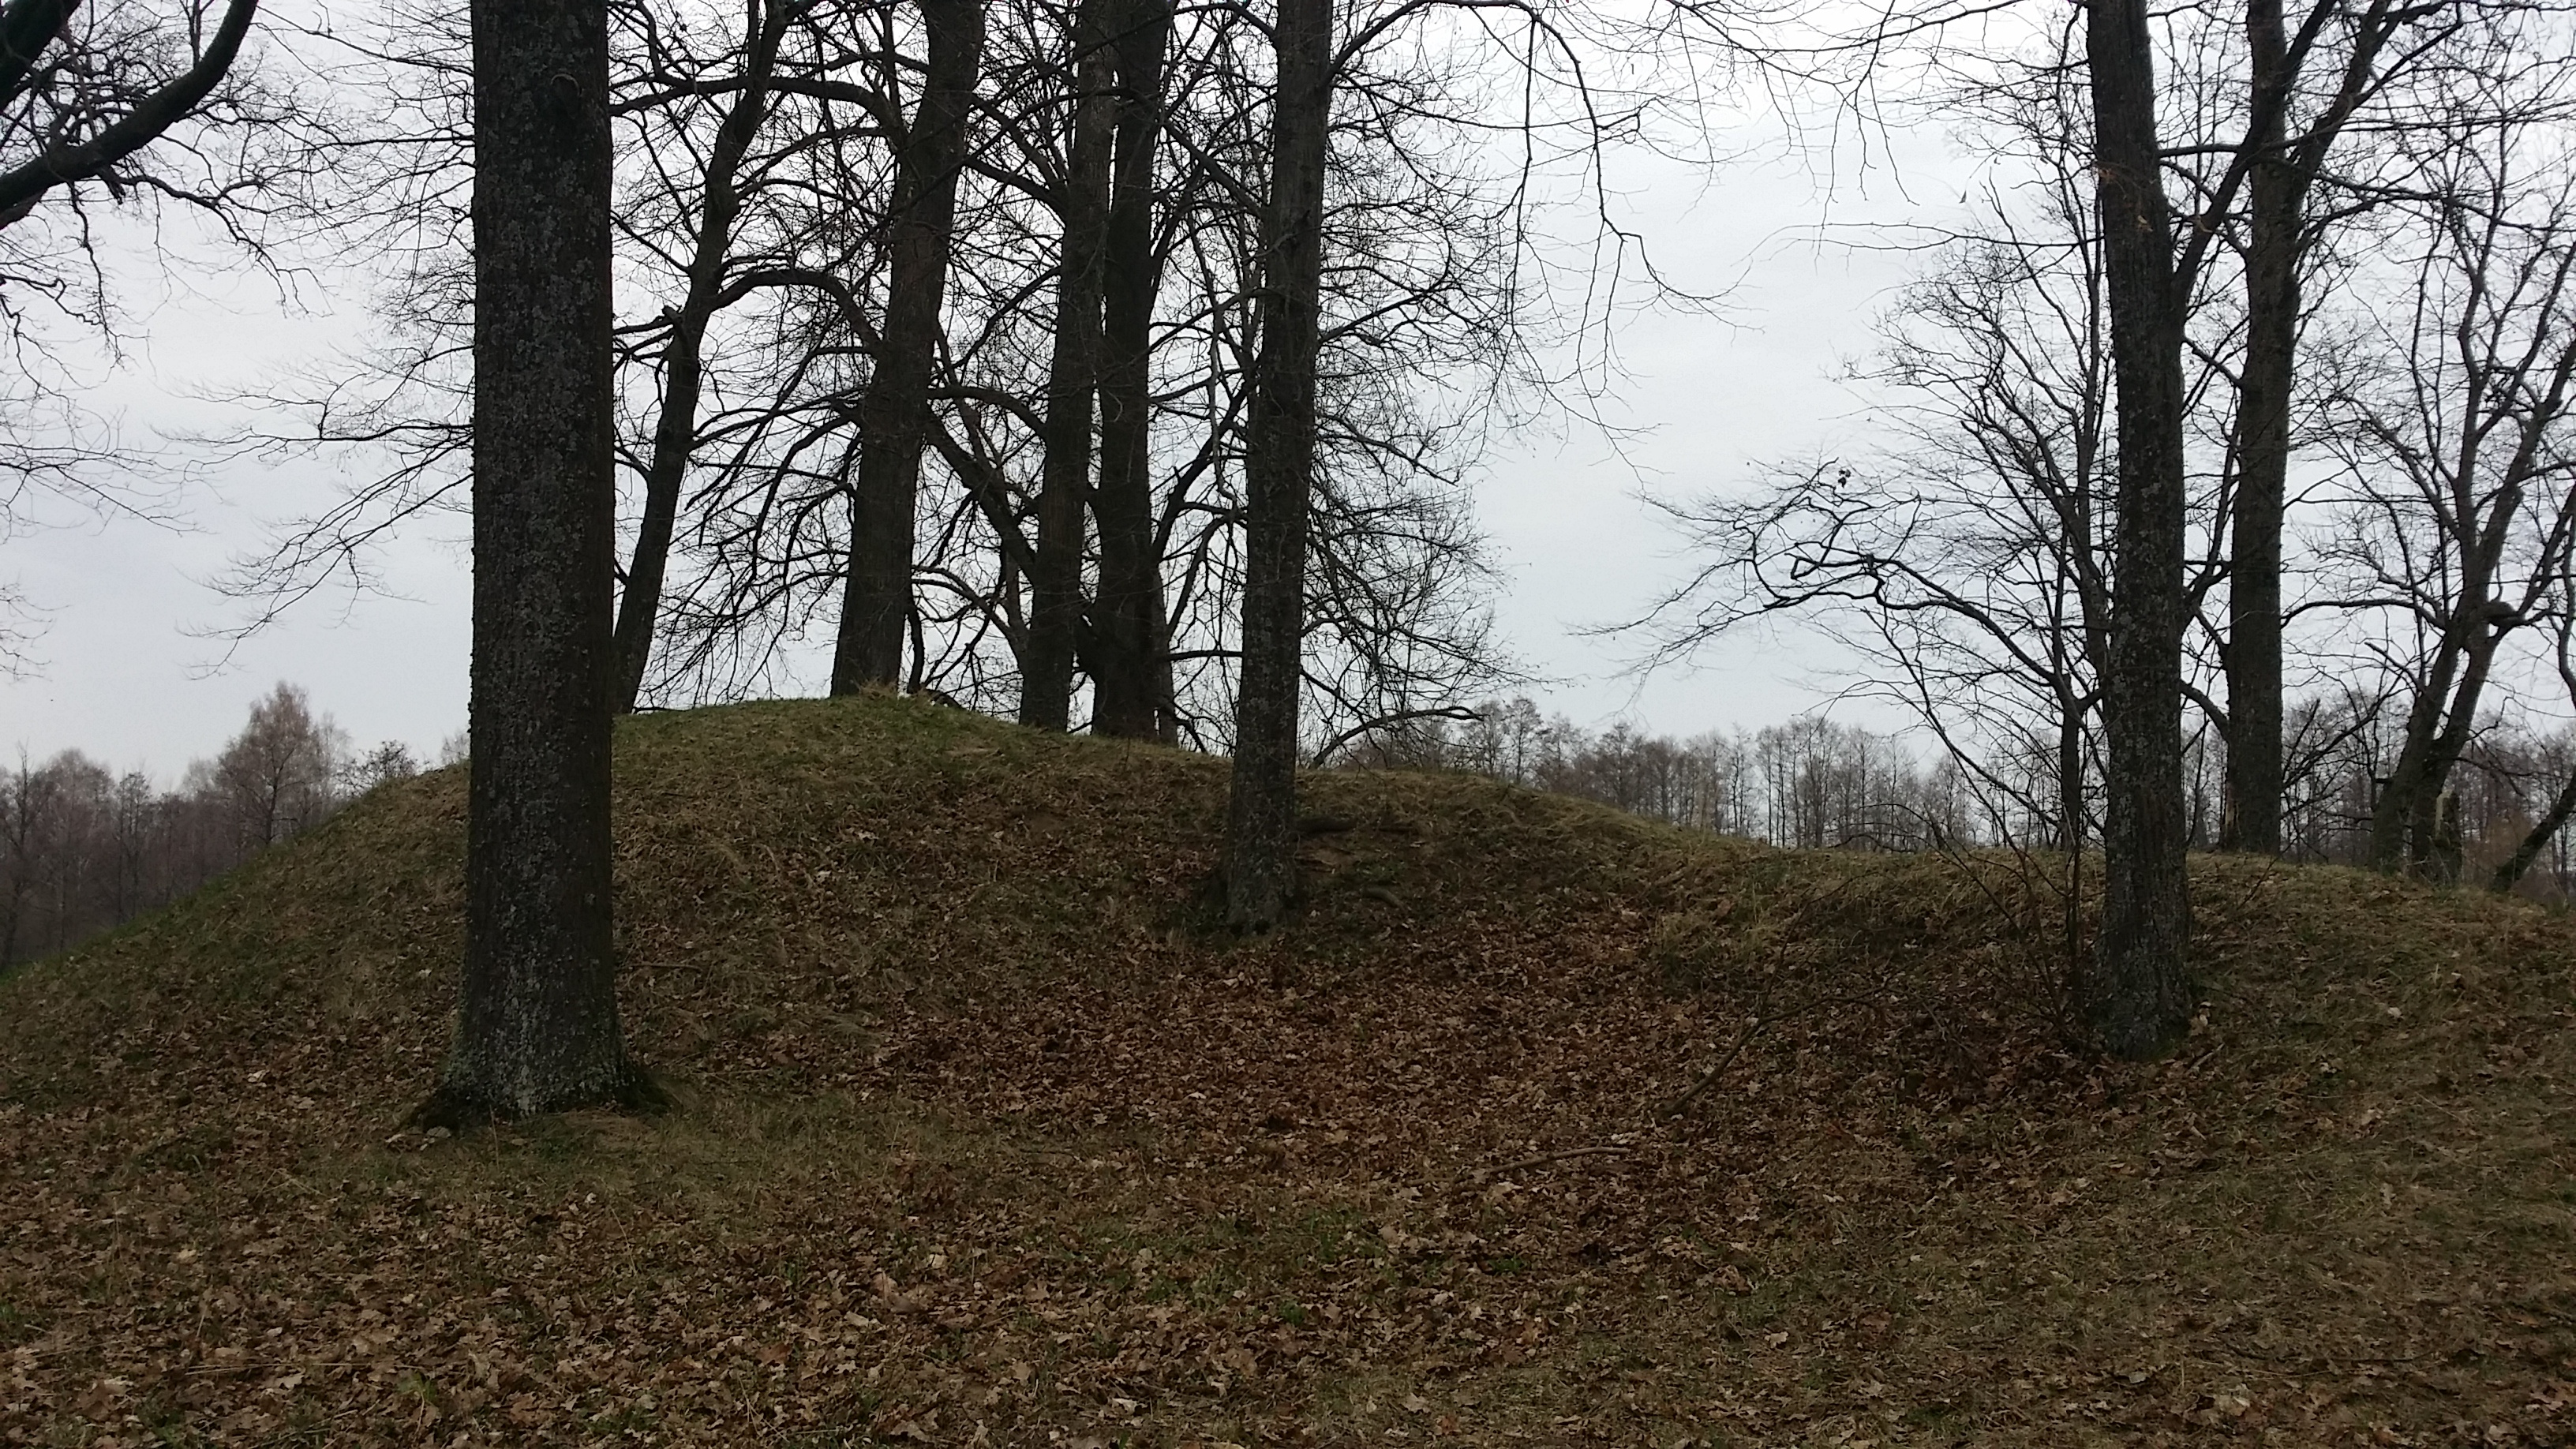 Mound of Mounds